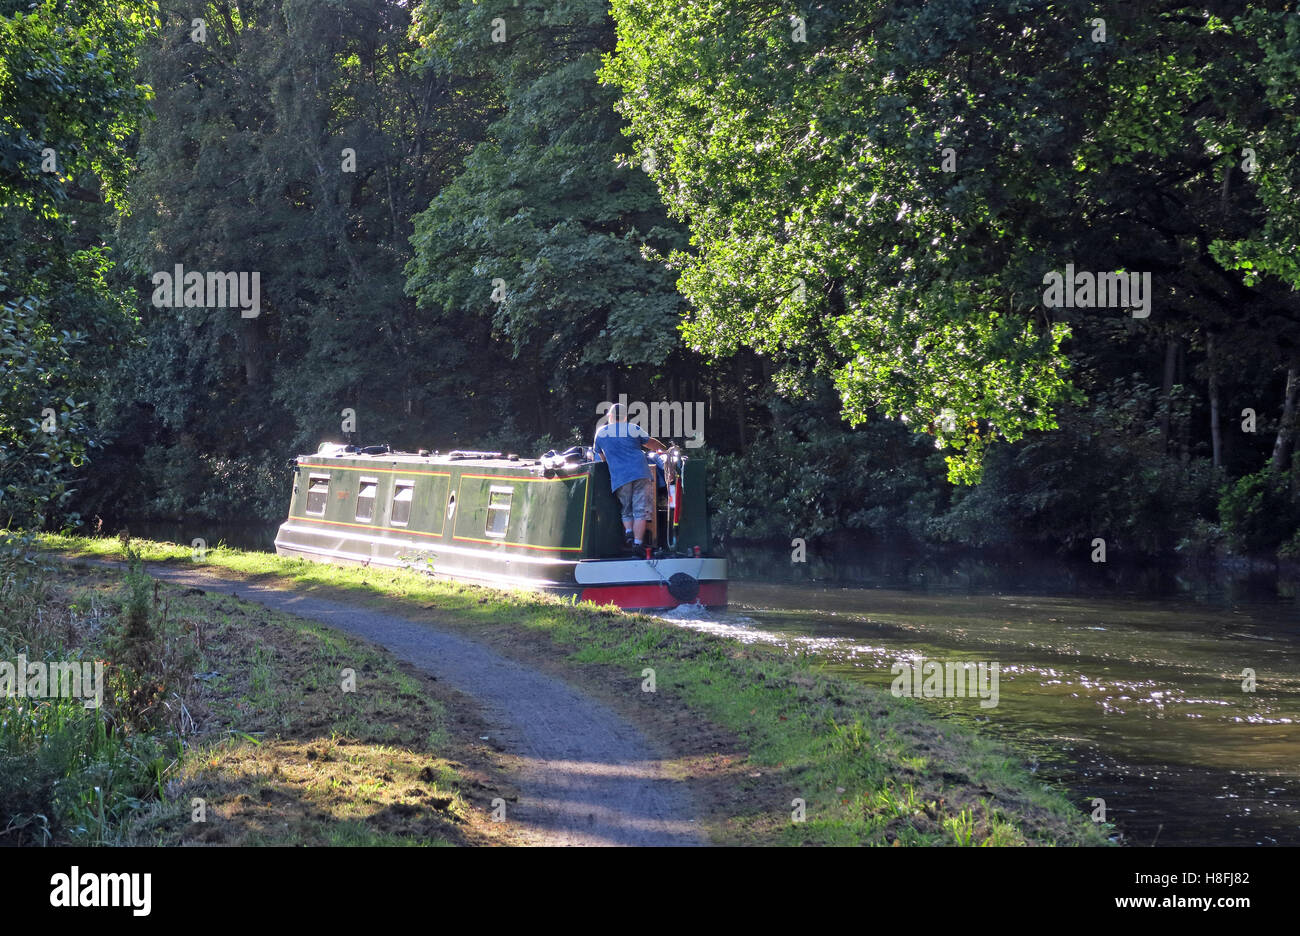 country,countryside,travel,tourism,tourist,walk,walking,cycle,track,trees,leisure.beautiful,still,reflections,Cheshire,England,UK,path,tow,towpath,NW,north,west,Halton,Narrowboat,in,distance,sailing,green,Cycle Track,sailing on the canal,GoTonySmith,@HotpixUK,Tony,Smith,UK,GB,Great,Britain,United,Kingdom,English,British,England,problem,with,problem with,issue with,Buy Pictures of,Buy Images Of,Images of,Stock Images,Tony Smith,United Kingdom,Great Britain,British Isles,Runcorn Canal,Runcorn Bridgewater Canal,Bridgewater Canal Halton